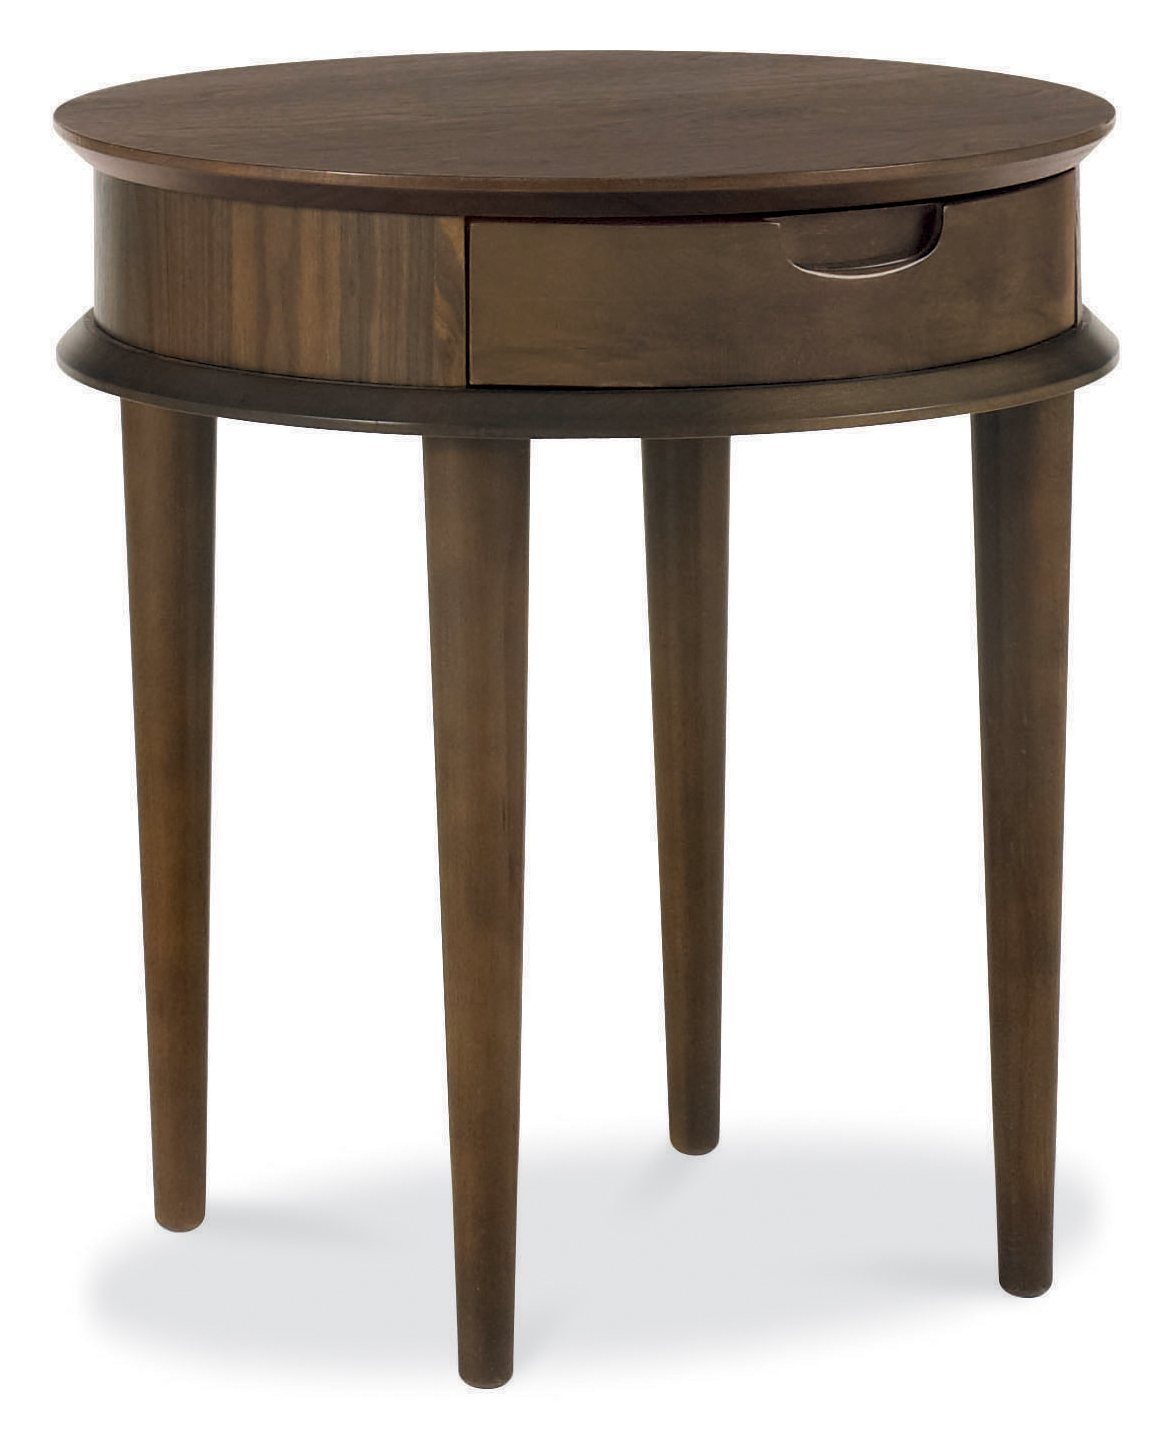 RETRO WALNUT DRAWER LAMP TABLE - L50cm x D50cm x H55cm